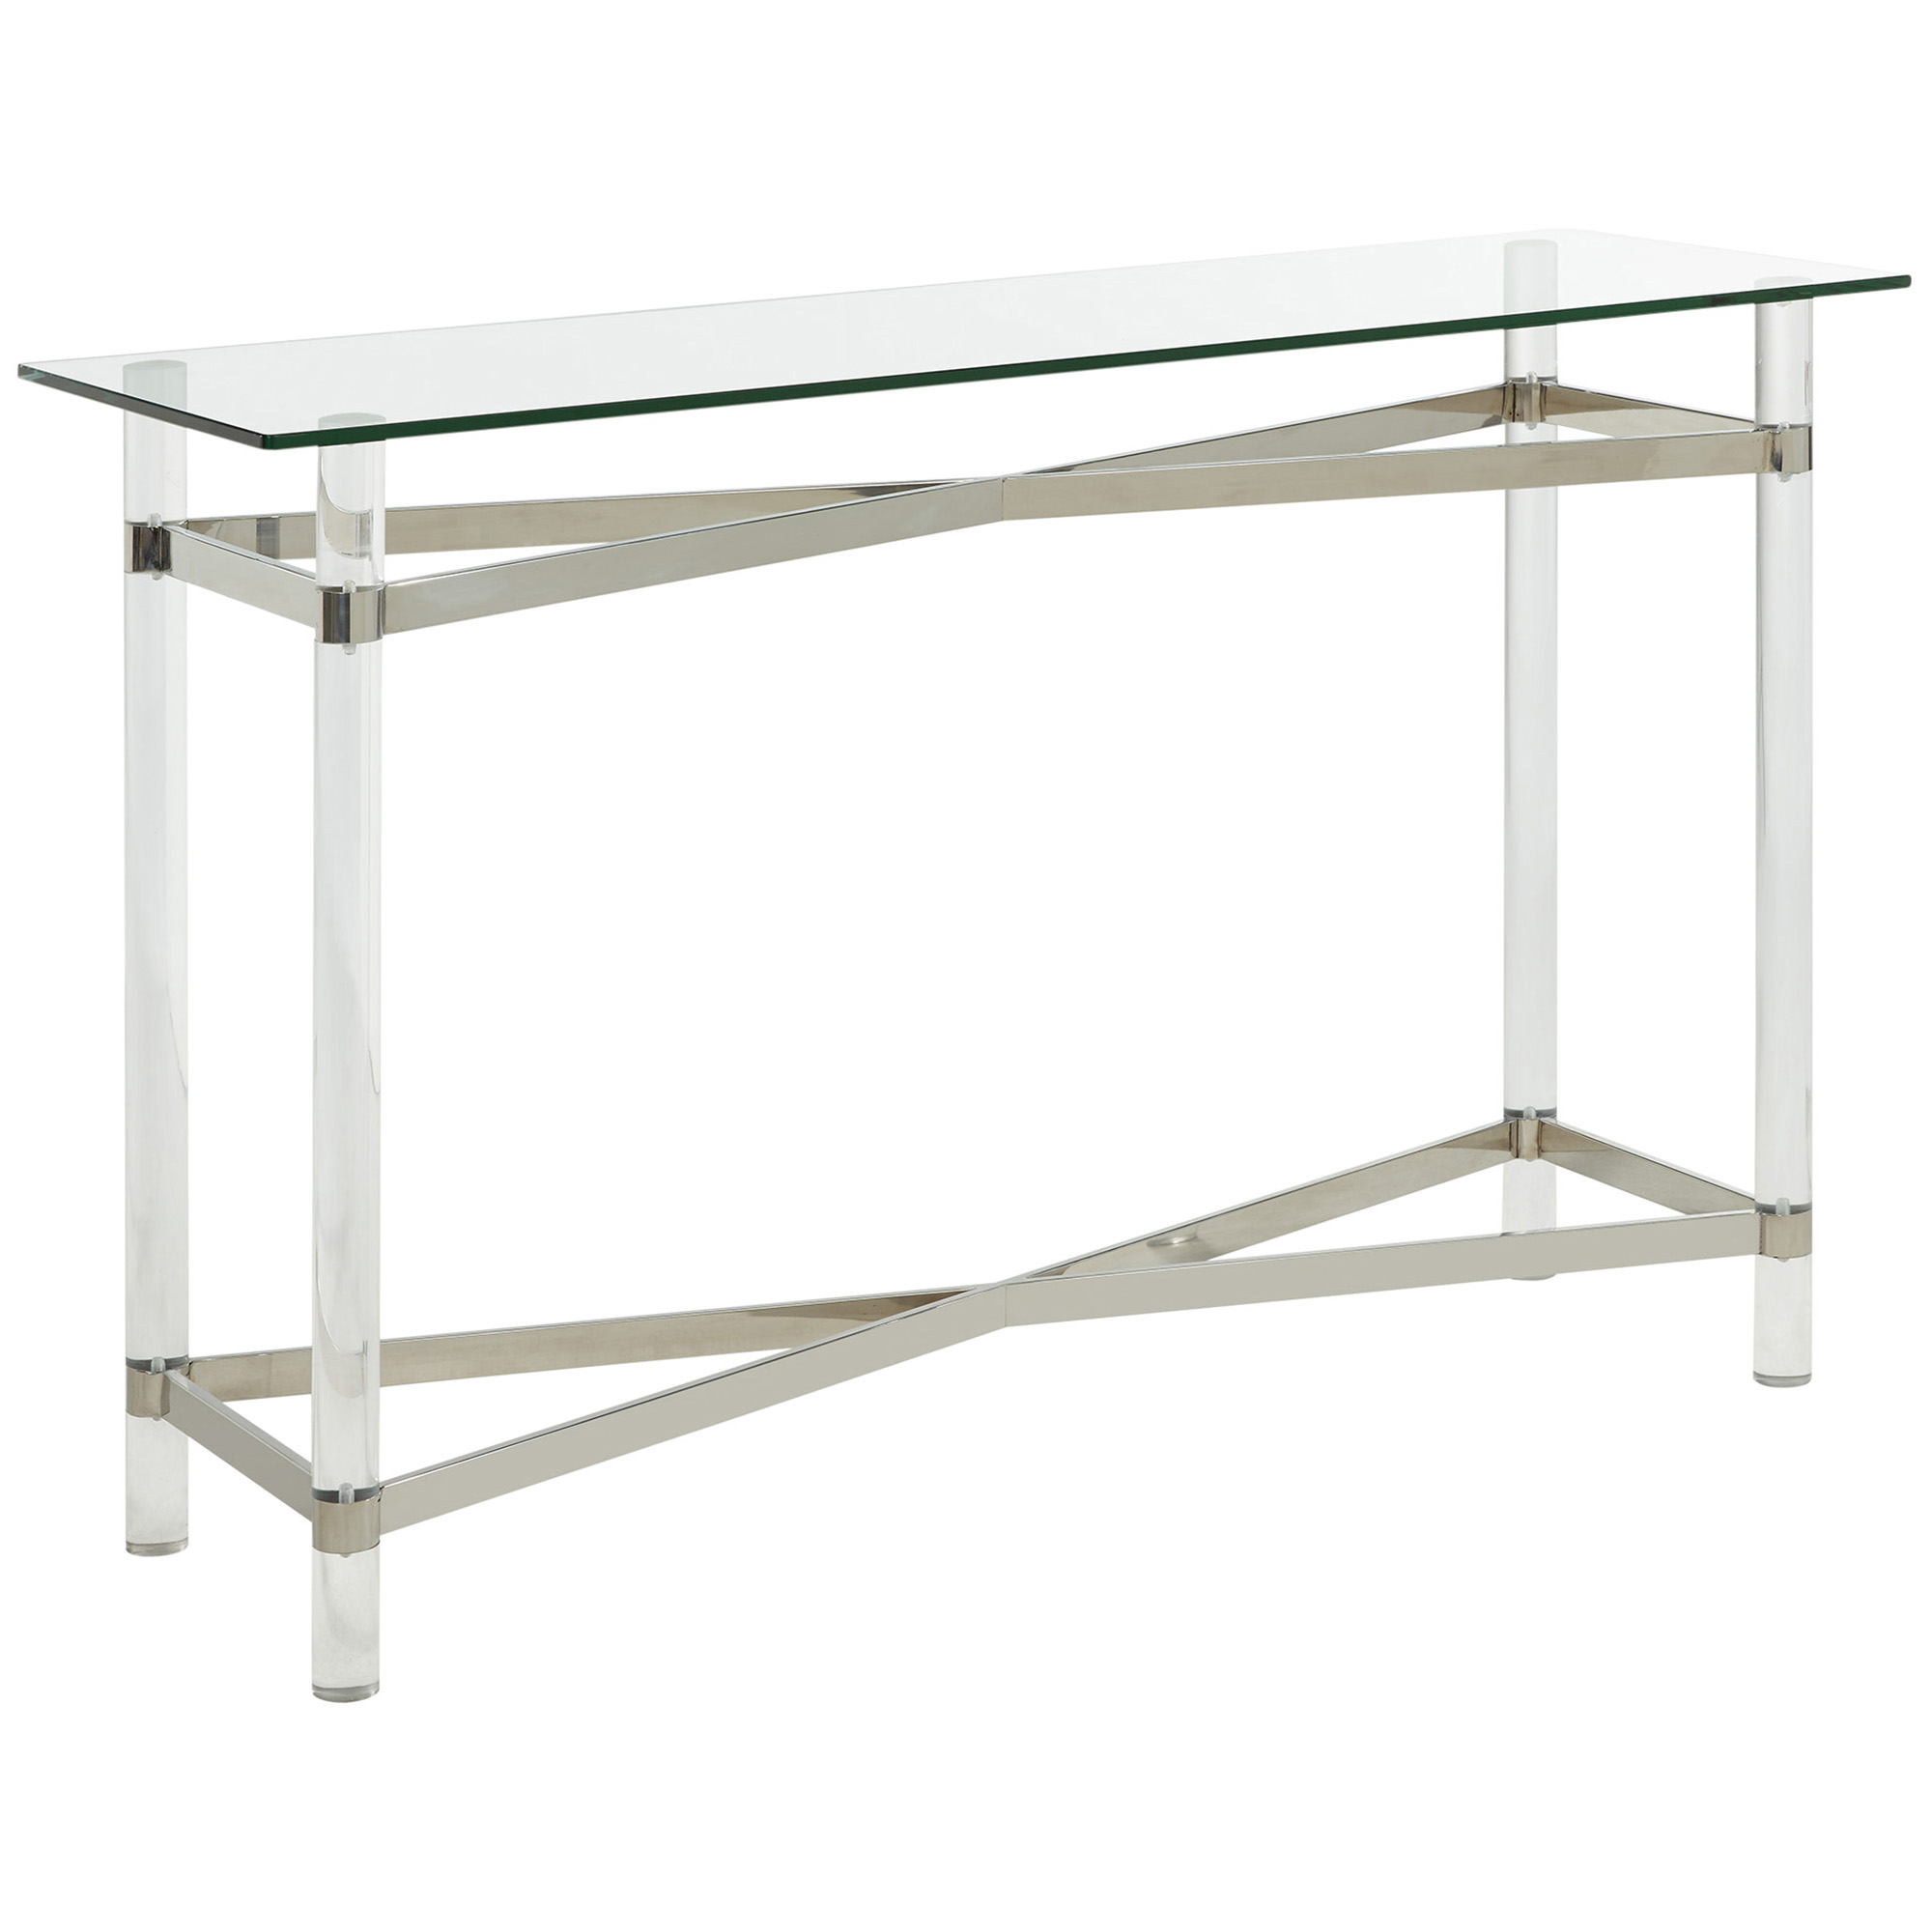 MORELIA-CONSOLE TABLE-CHROME, 841173026585, Console Table by Midha Furniture to Brampton, Mississauga, Etobicoke, Toronto, Scraborough, Caledon, Oakville, Markham, Ajax, Pickering, Oshawa, Richmondhill, Kitchener, Hamilton and GTA area